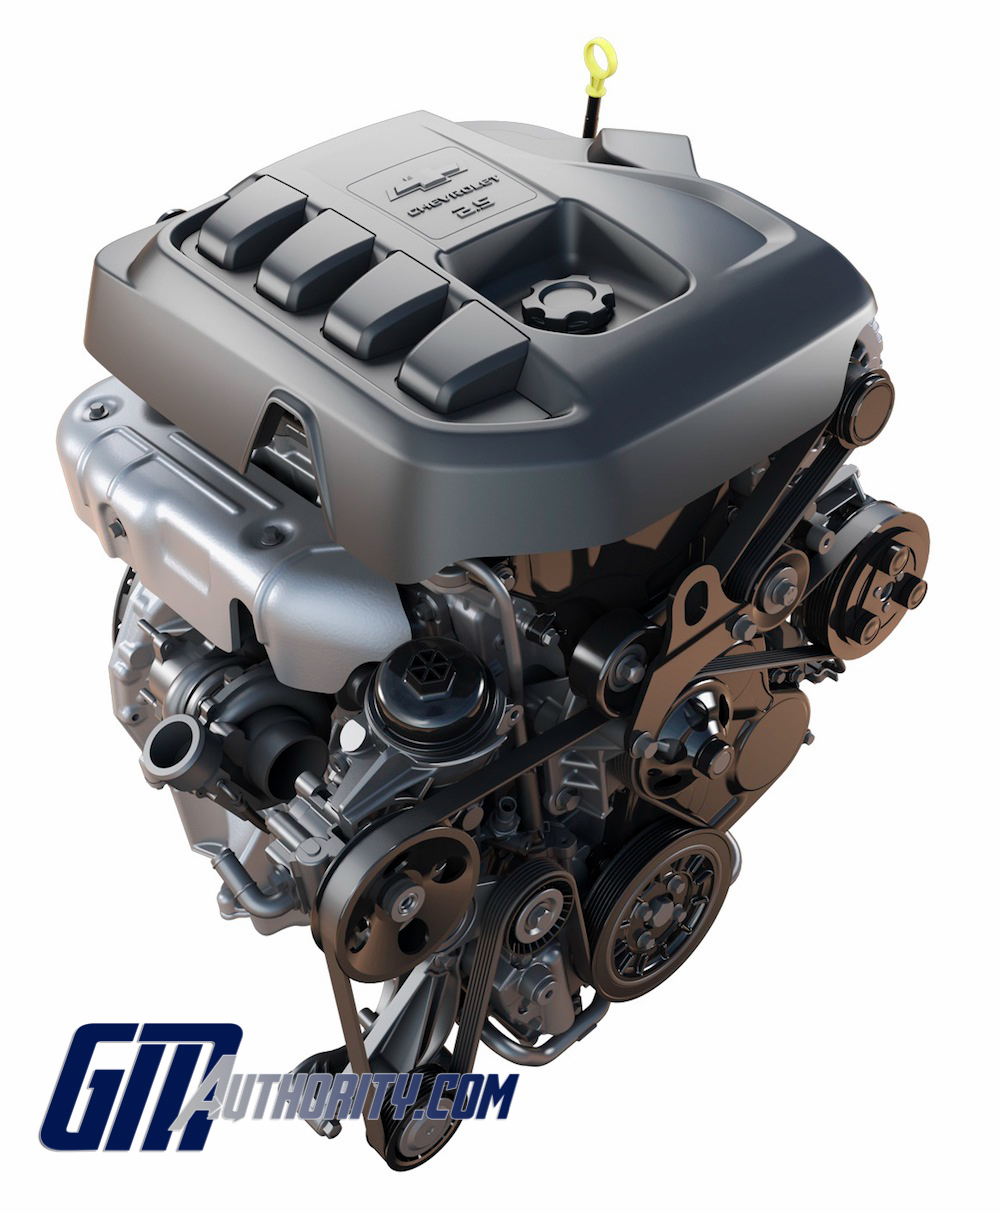 hight resolution of 2 5l duramax turbo diesel i4 xld25